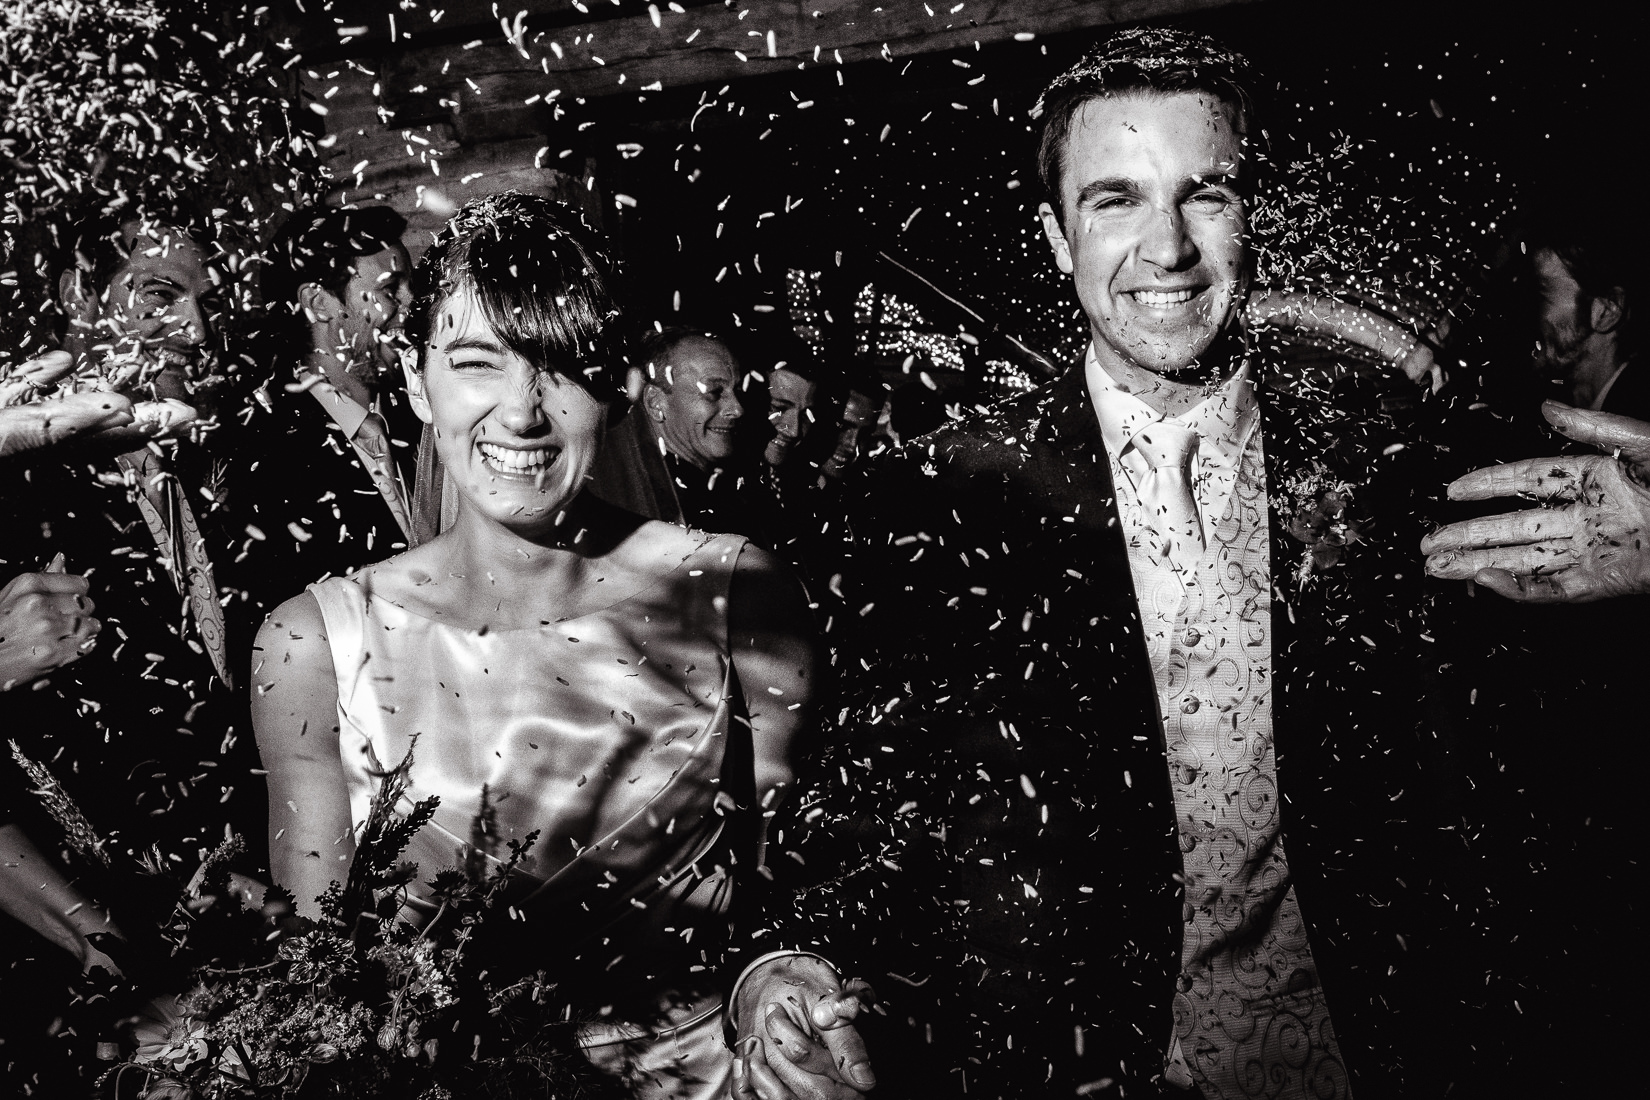 confetti as bride and groom leave wedding ceremony